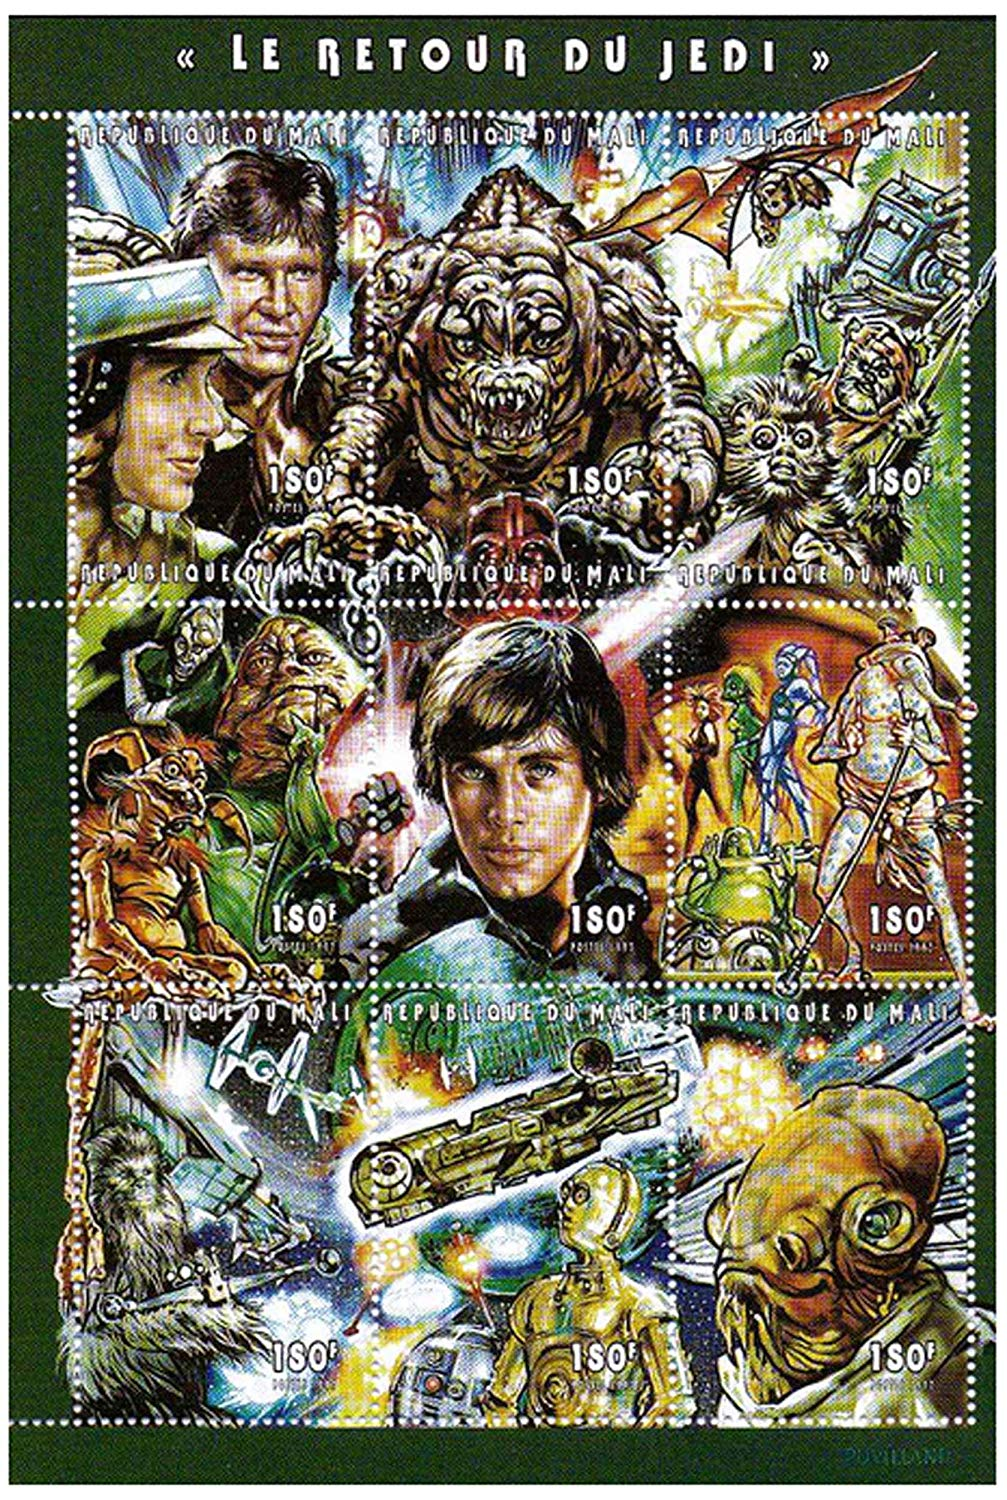 Star Wars - Star Wars timbres retour du Jedi - 9 timbres neuf timbre feuillet